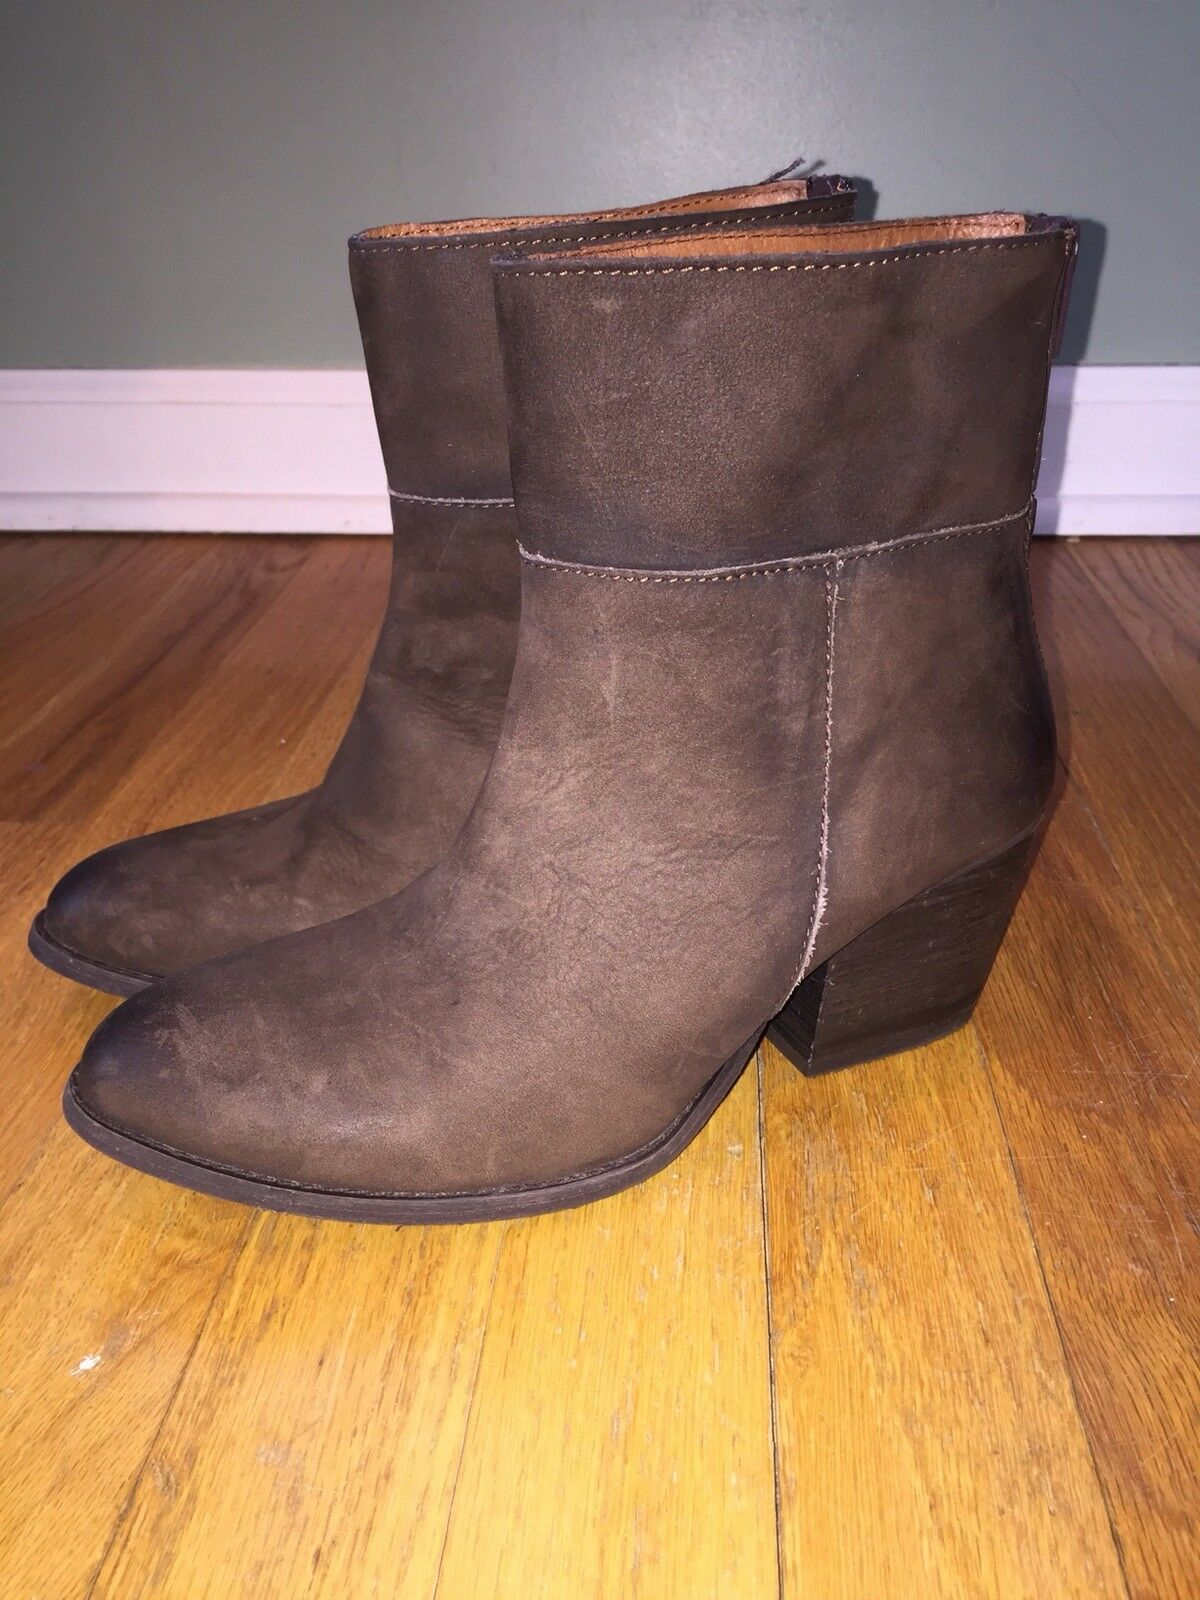 Women's Steve Madden Sandyy Brown Leather Boots 7.5 New In Box